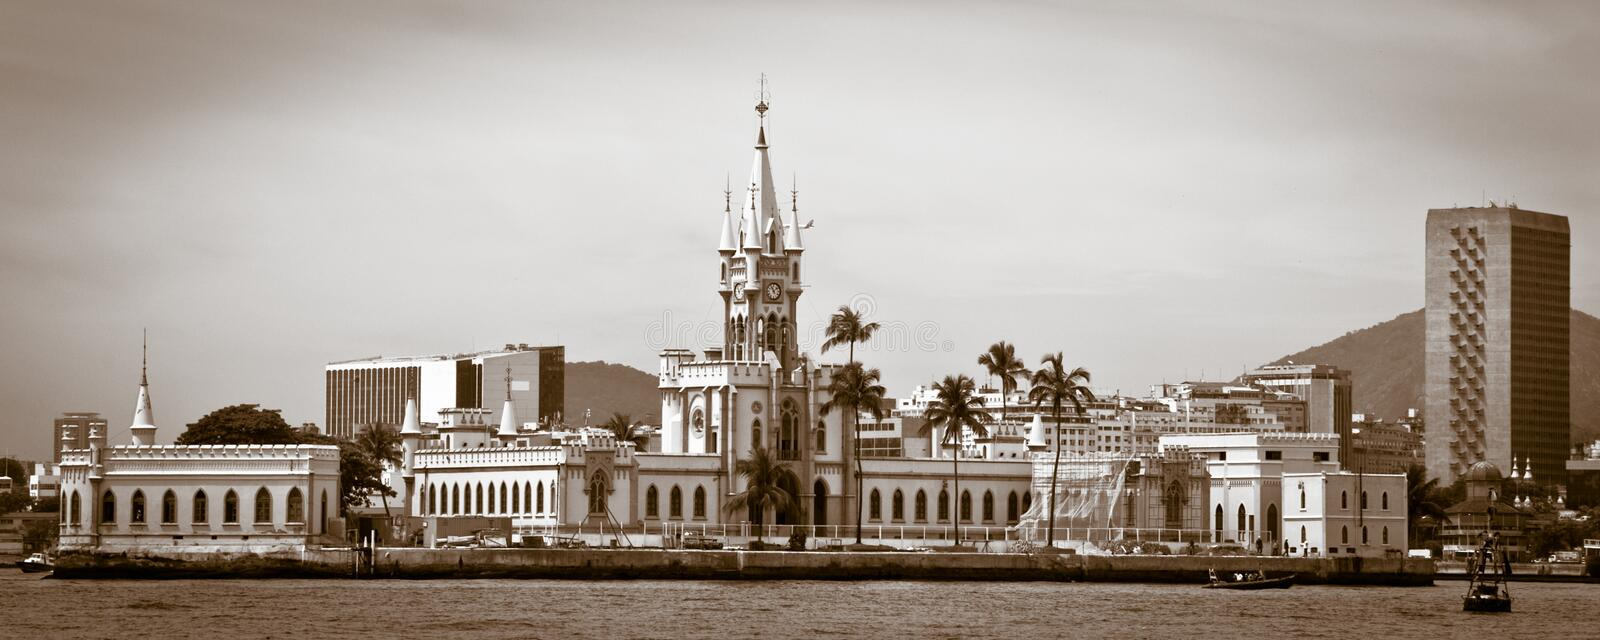 Old Building On Fiscal Island Royalty Free Stock Image